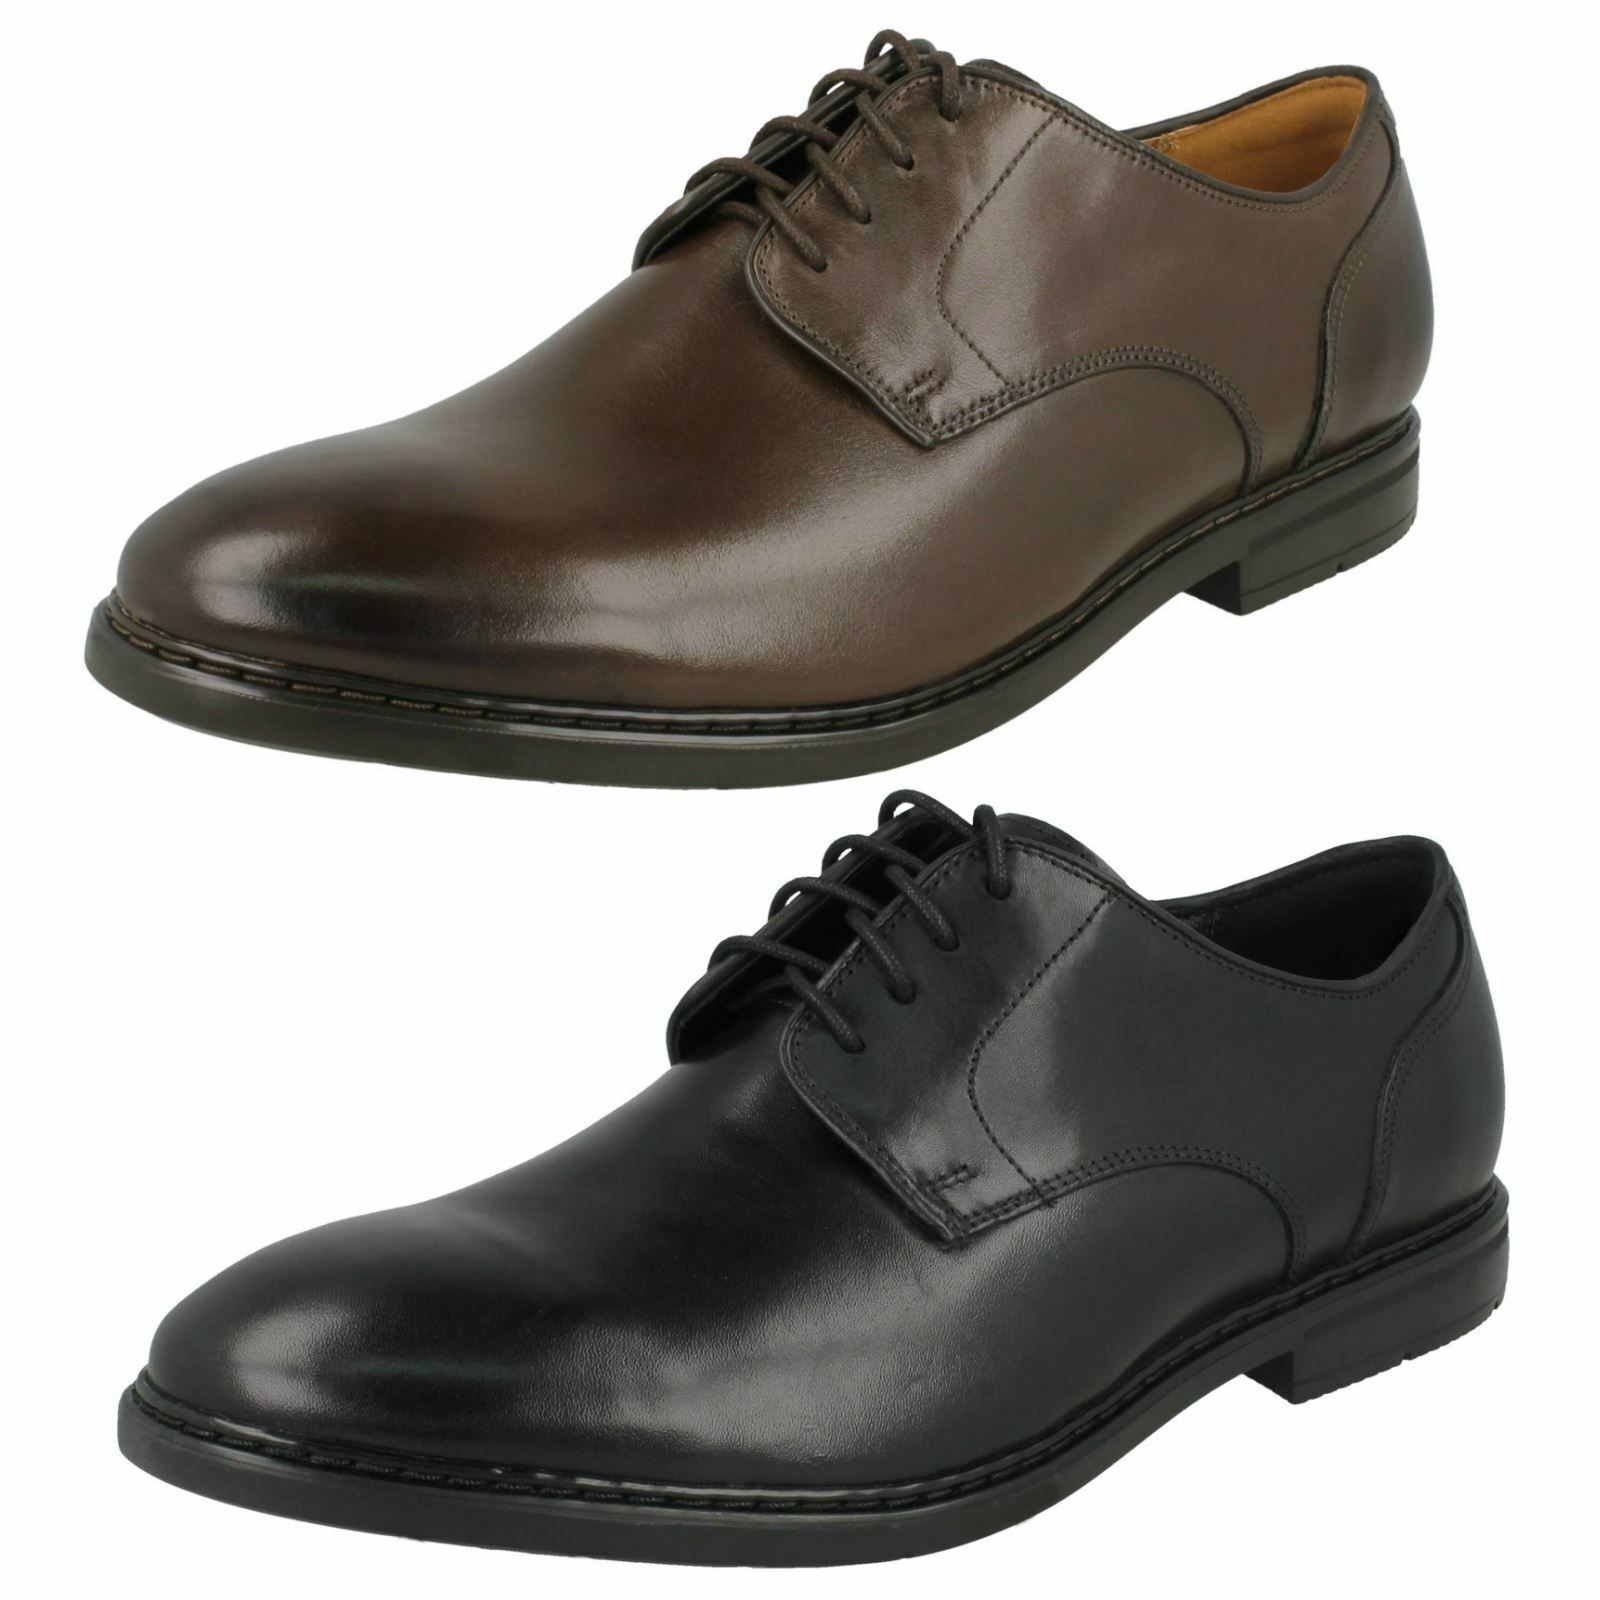 Mens Clarks Formal Shoes Banbury Lace